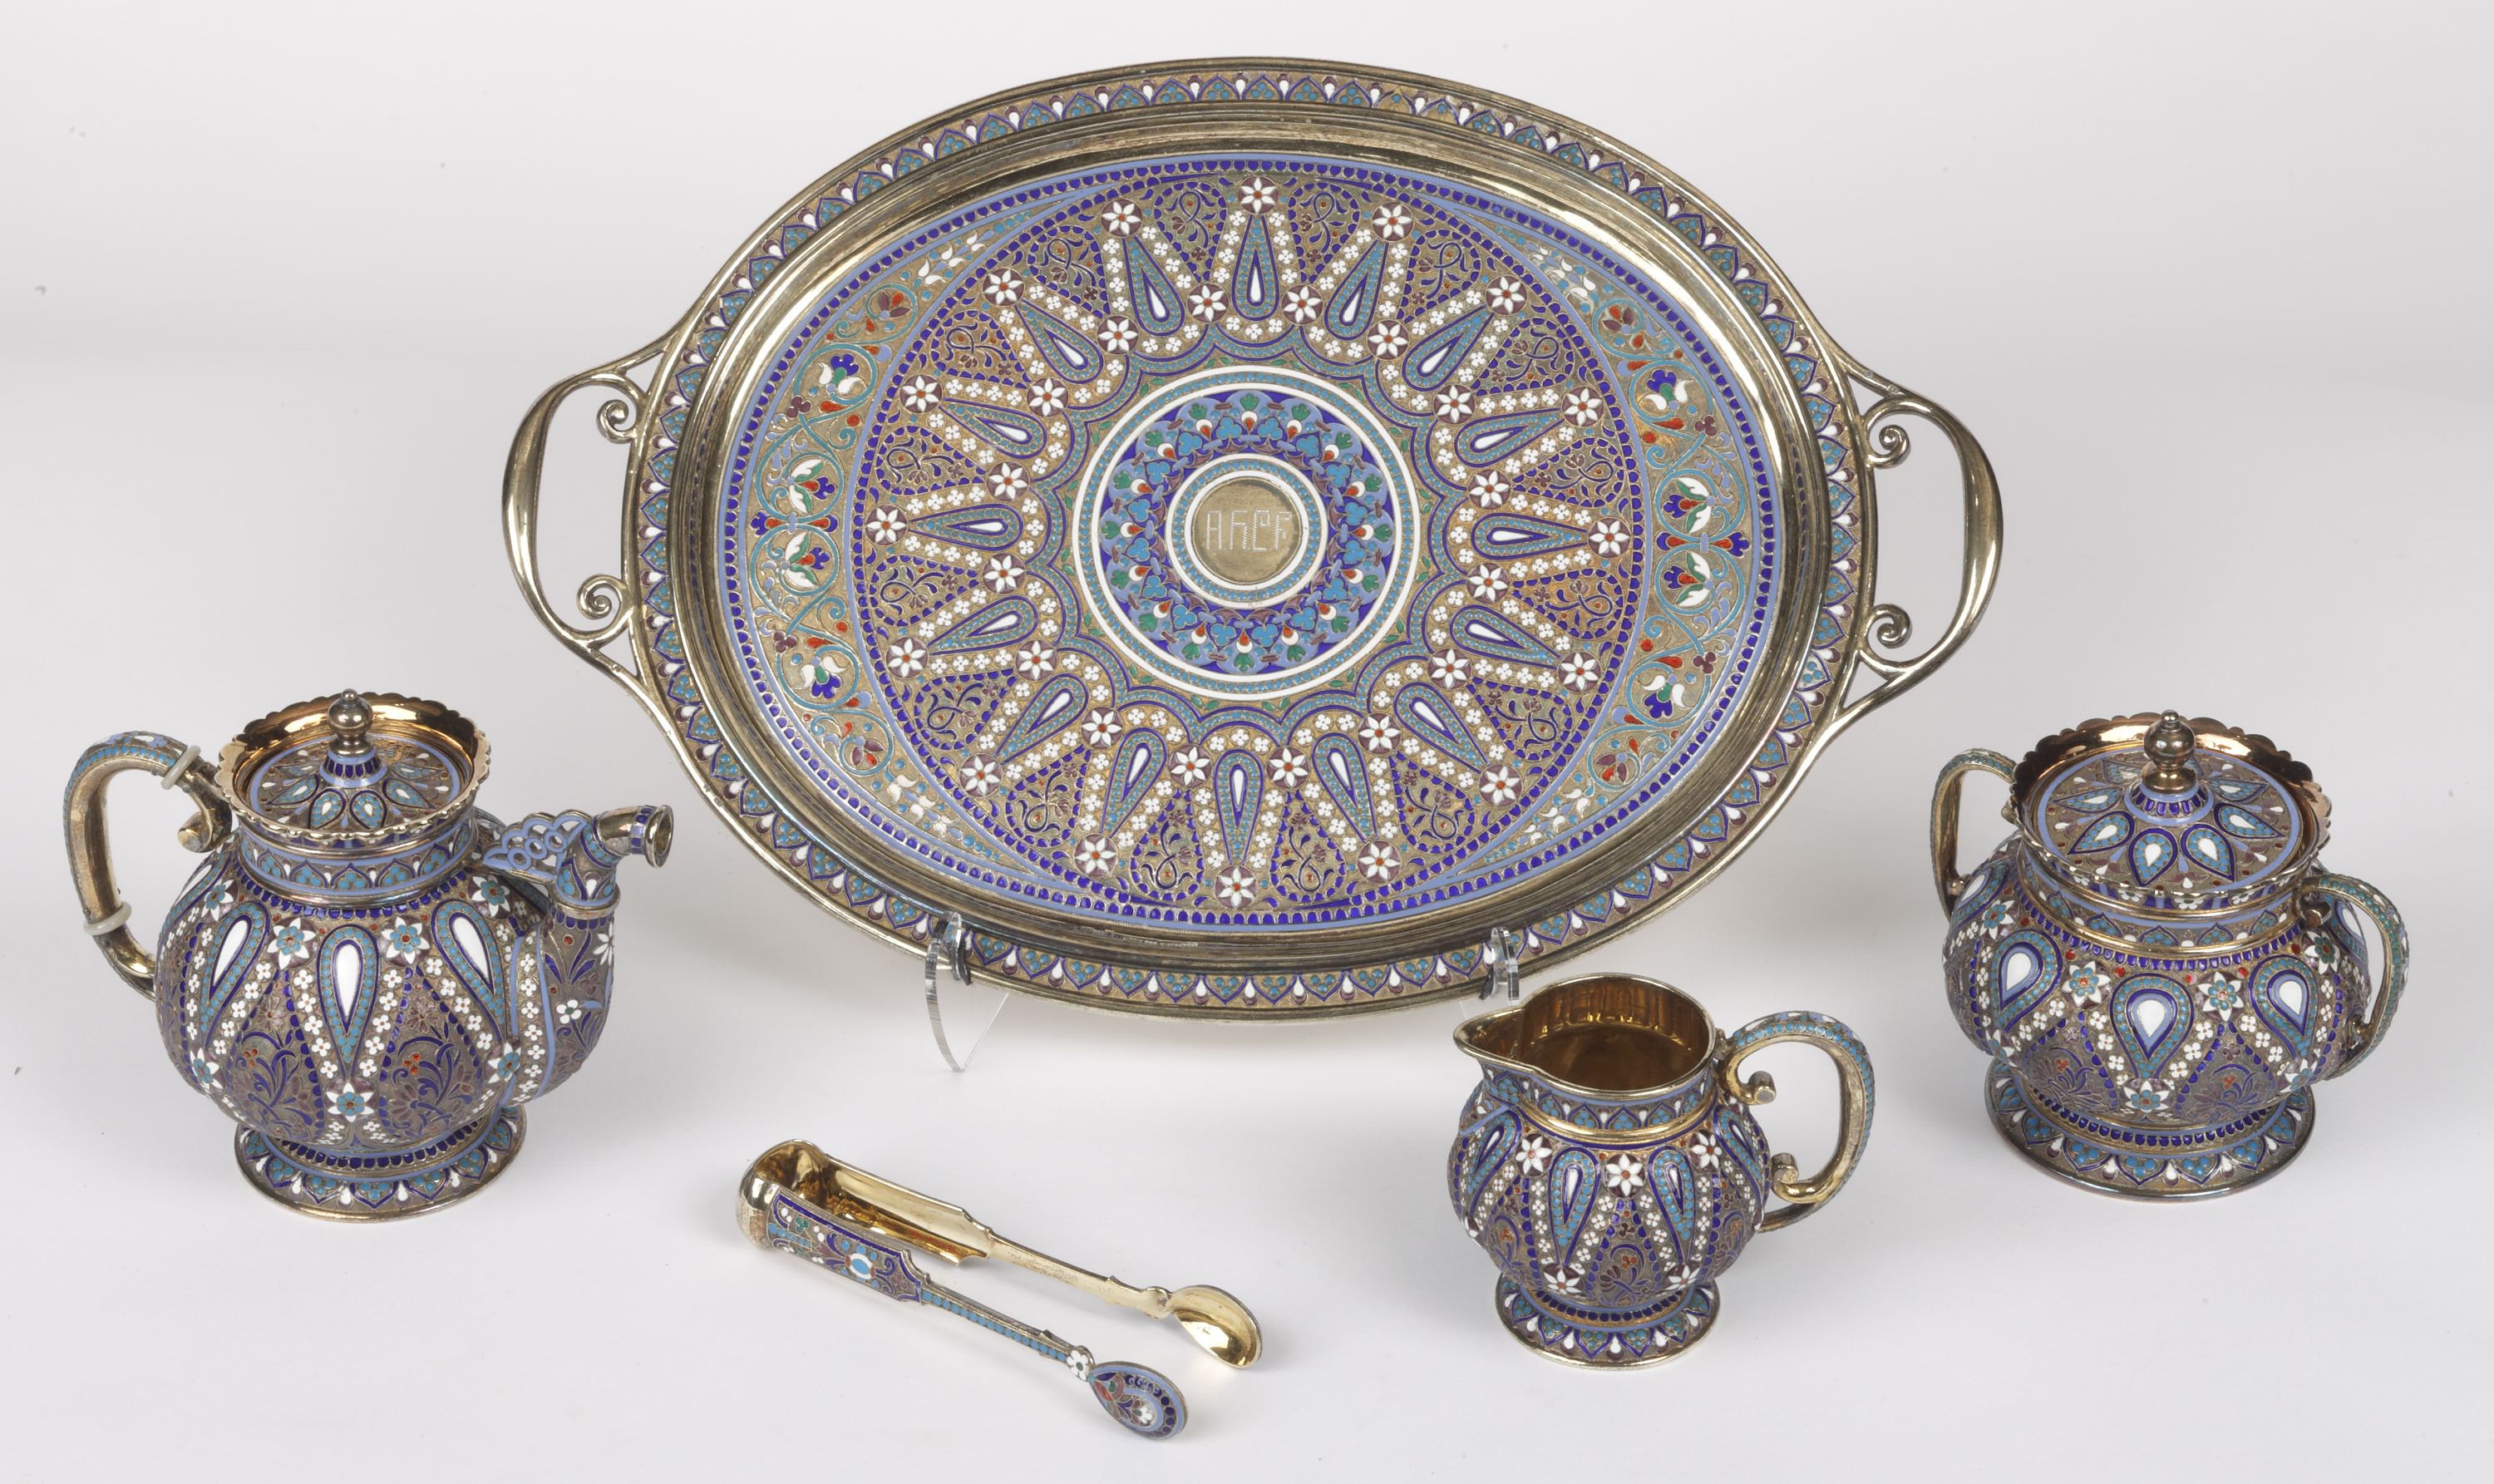 When Henry's wife Adelaide Childs Frick served tea, she could use this decorated-silver tea set from the Russian artist Antip Kuzmichev.